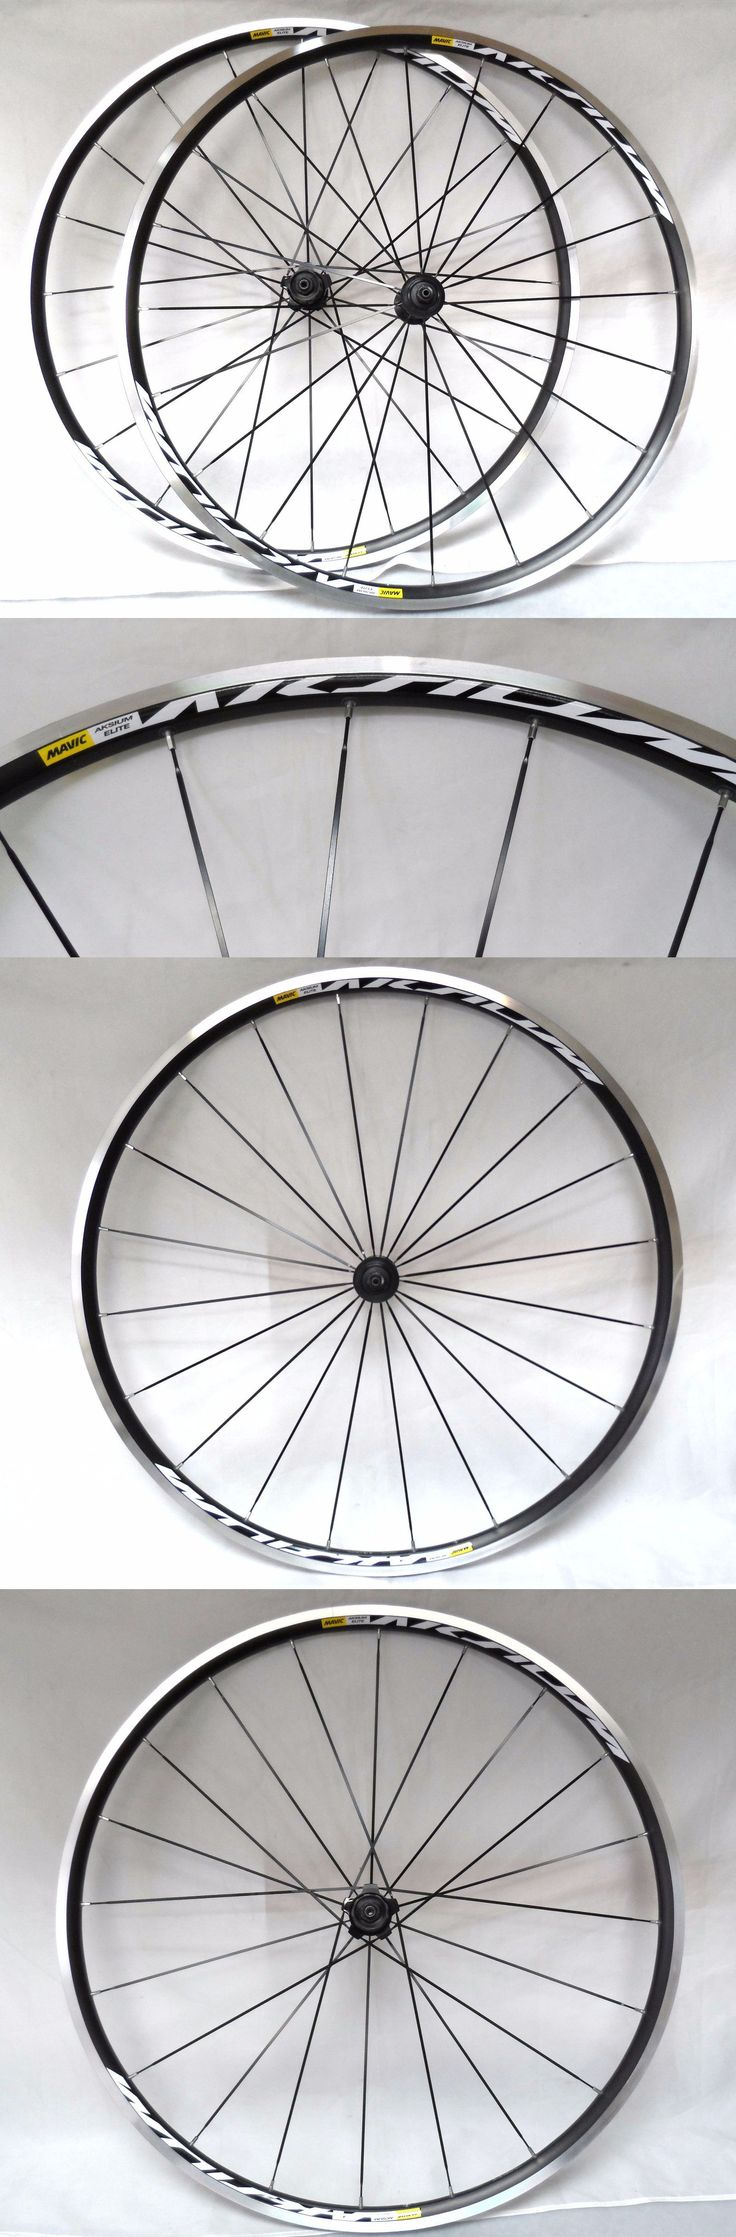 Wheels and Wheelsets 177830: Mavic Aksium Elite 700C Road Bicycle Wheelset, 11 Speed, Qr Front And Rear New! -> BUY IT NOW ONLY: $189.99 on eBay!